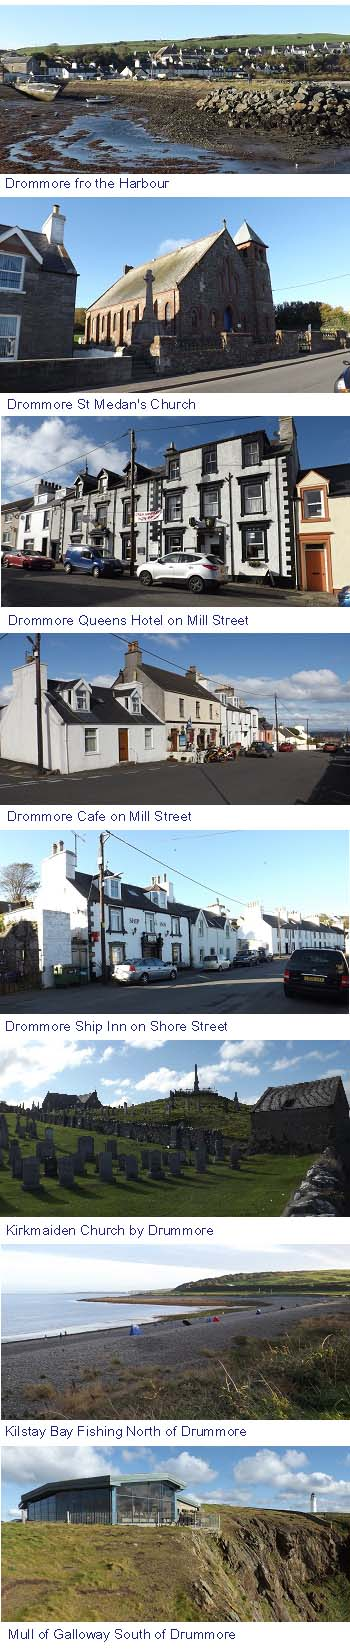 Drummore Images